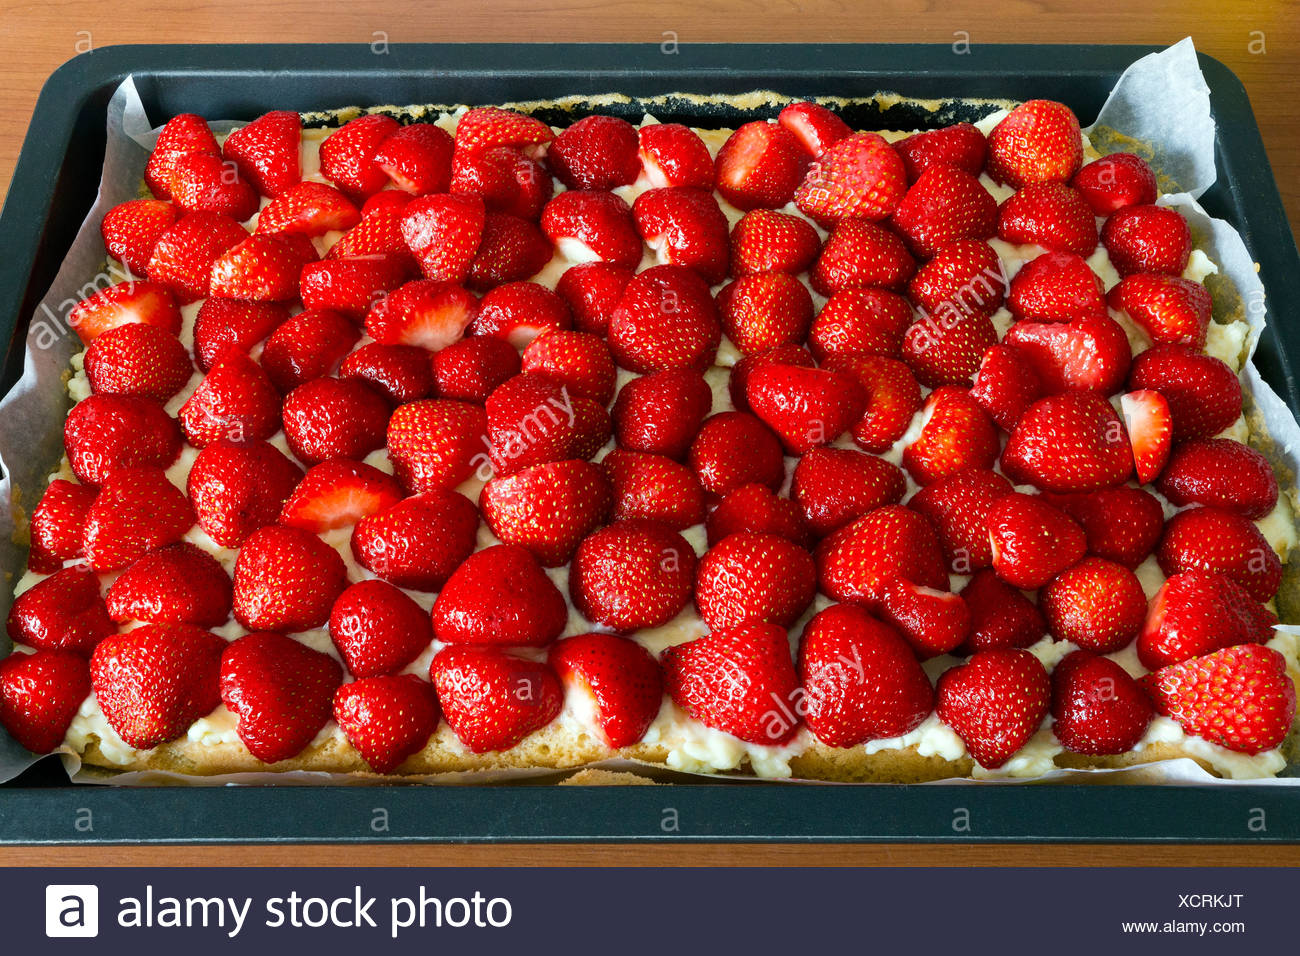 A strawberry cake on a baking sheet - Stock Image